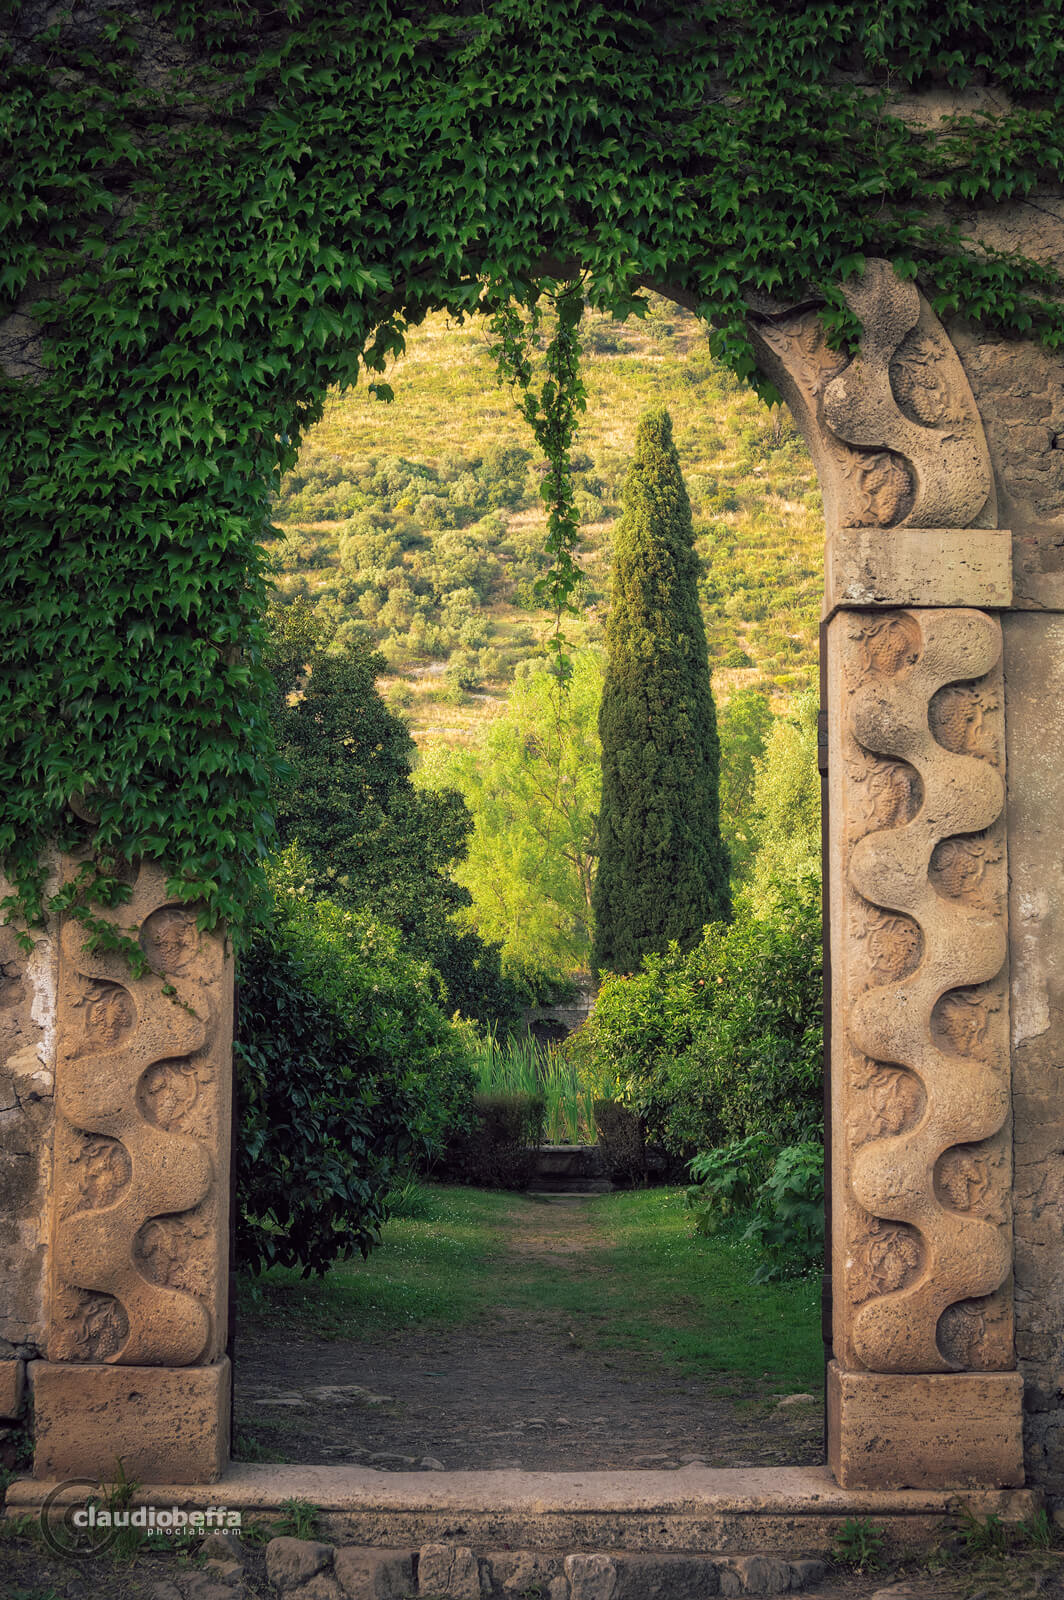 Garden of Ninfa, Garden, Ninfa, Italy, Gate, Horti Nympharum, Hortus Conclusus, Caetani, Nature, Spring, Travel, Travel Photography, Ancient, Romantic